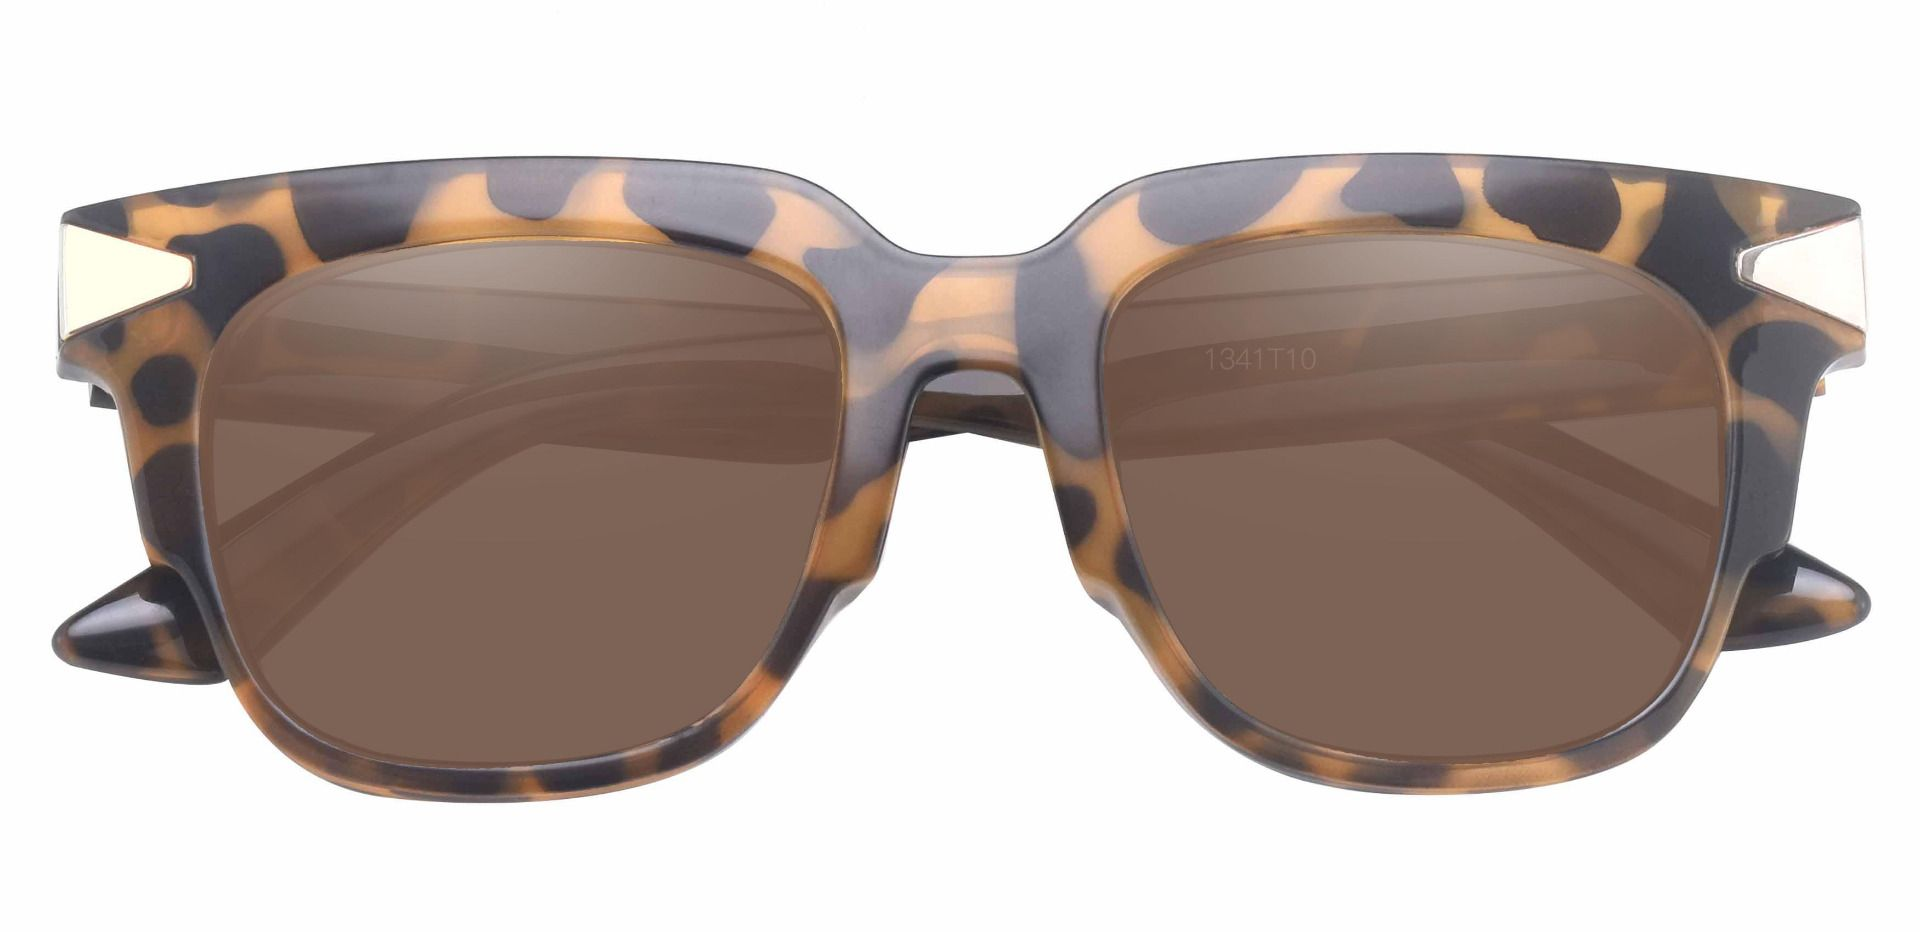 Ardent Square Reading Sunglasses - Tortoise Frame With Brown Lenses